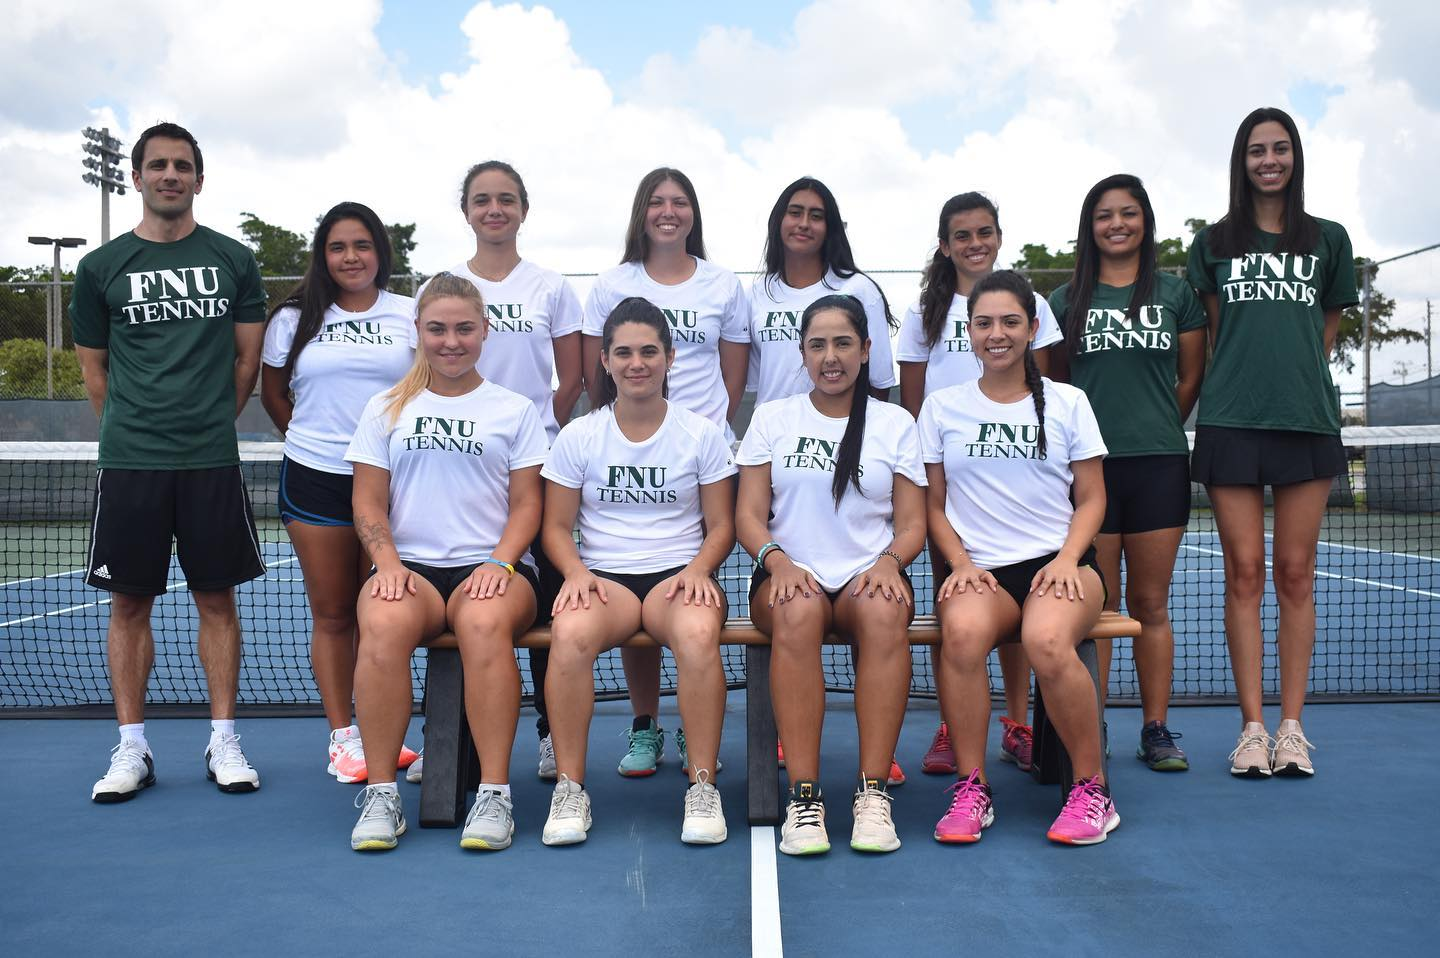 FNU Women's tennis team picture